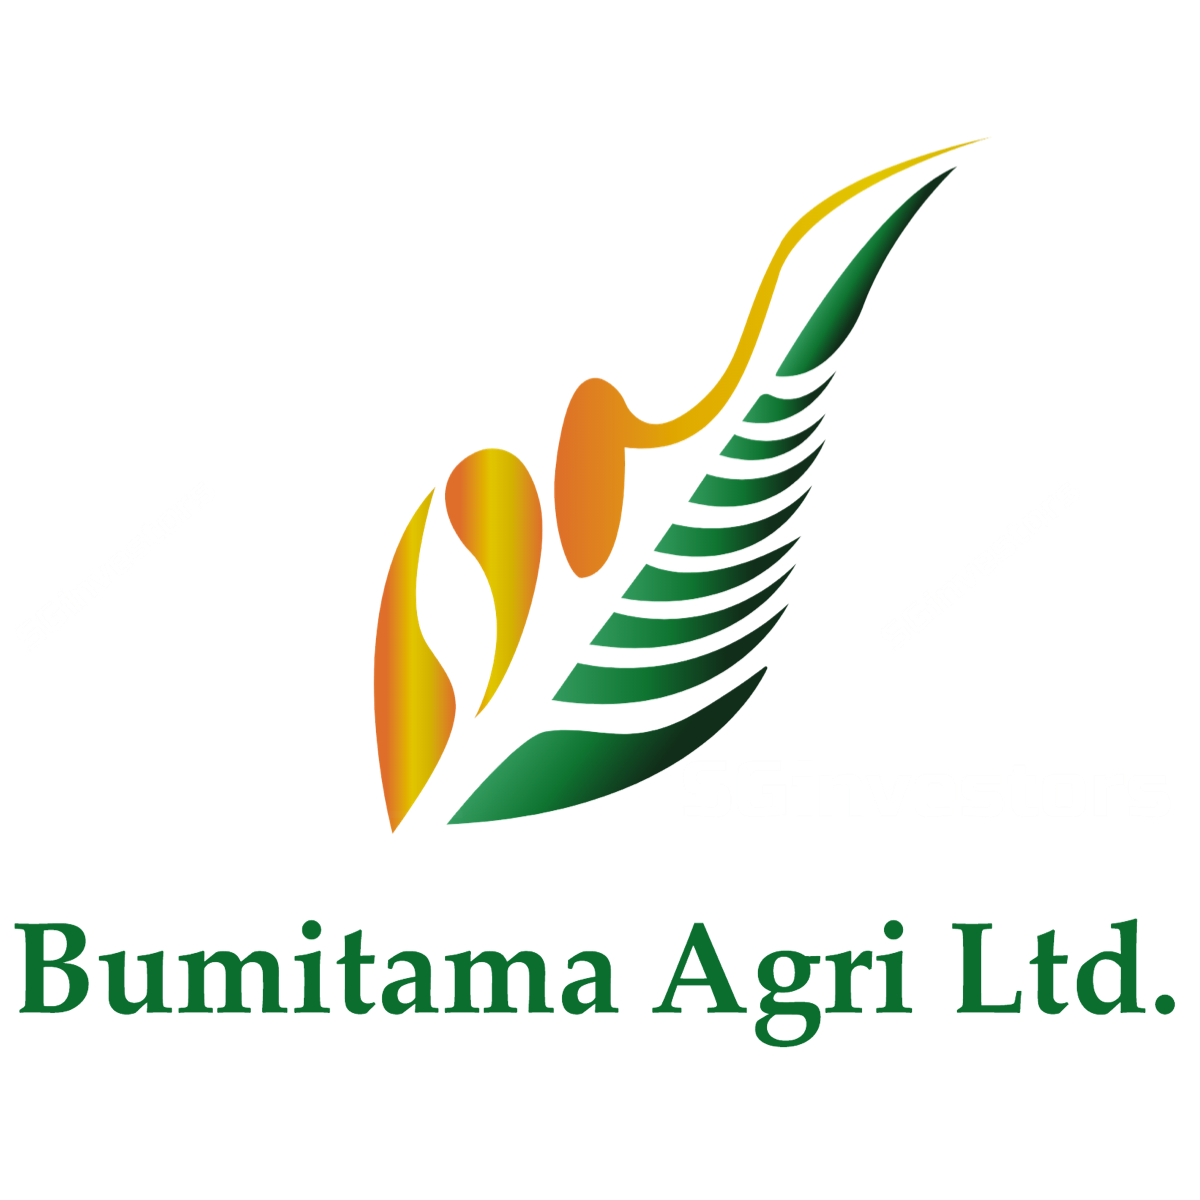 Bumitama Agri - RHB Invest 2017-11-15: Another Strong Quarter, But The Best Is Yet To Come